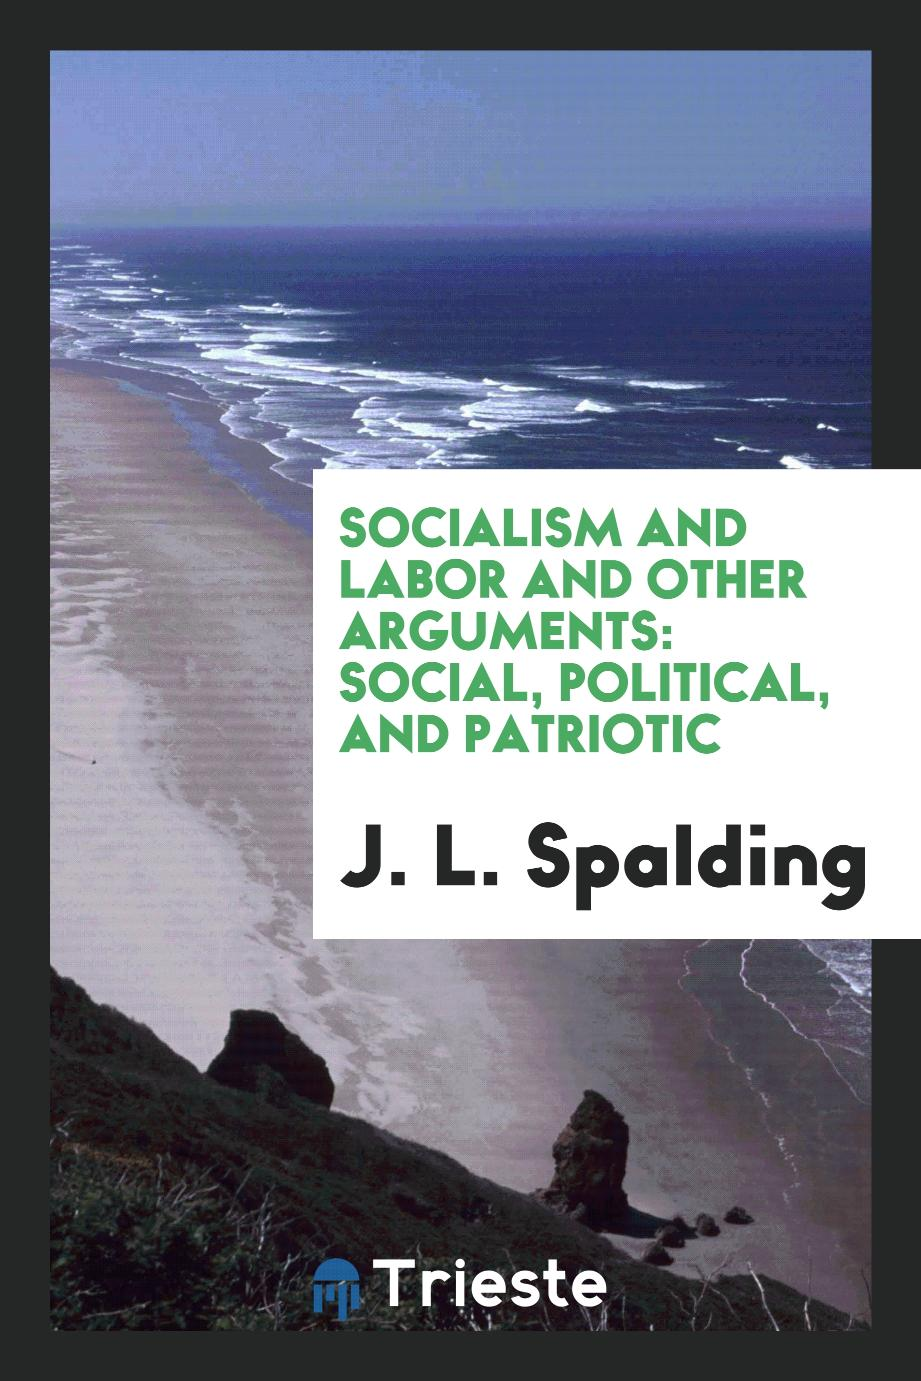 Socialism and labor and other arguments: social, political, and patriotic